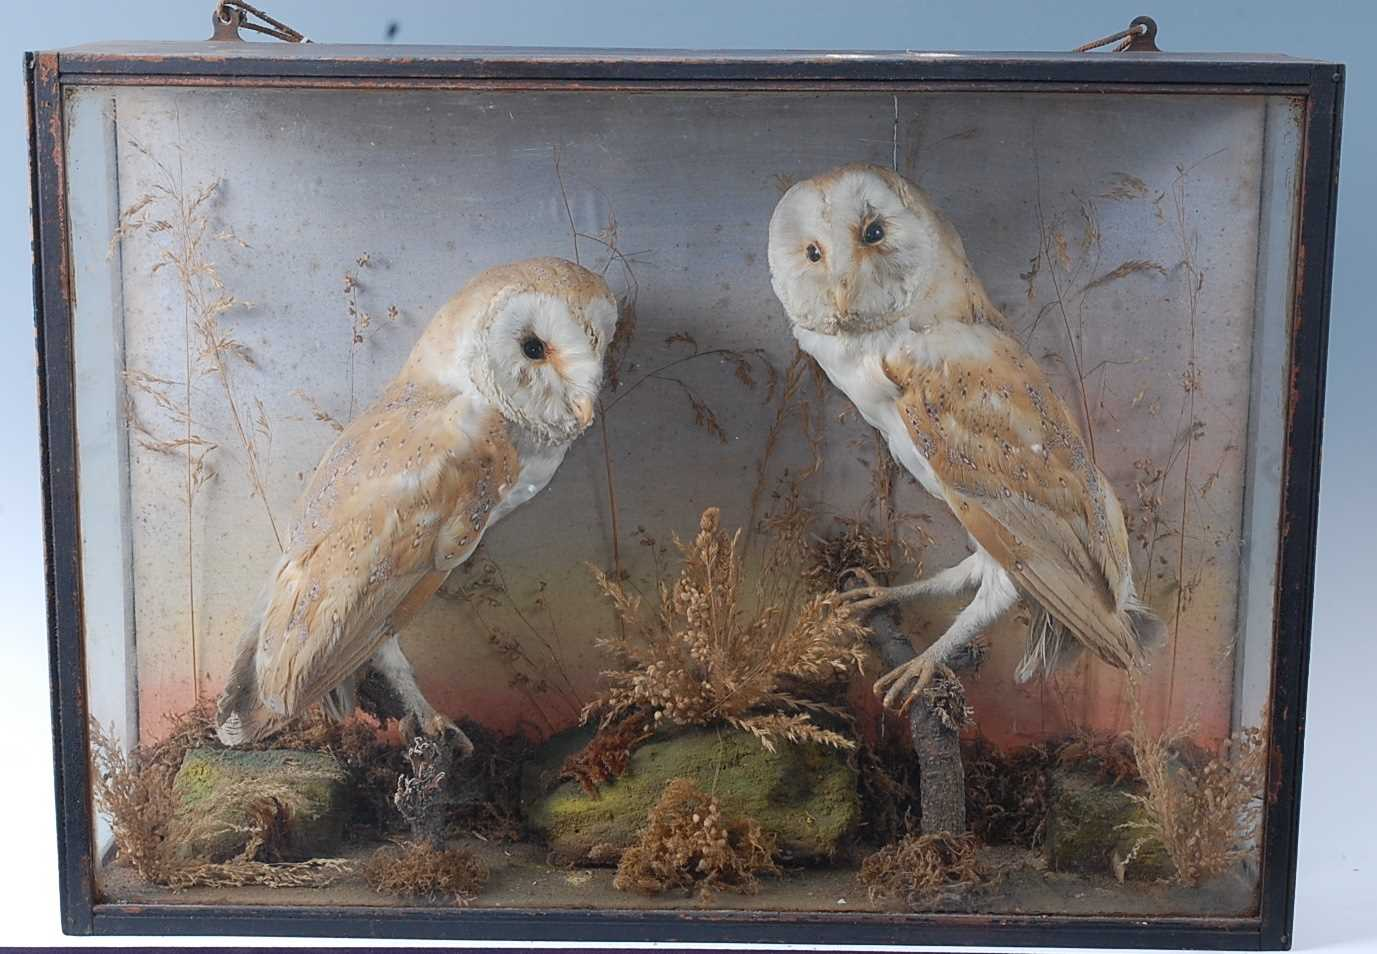 A brace of early 20th century taxidermy Barn owls (Tyto alba), each mounted facing the other in a